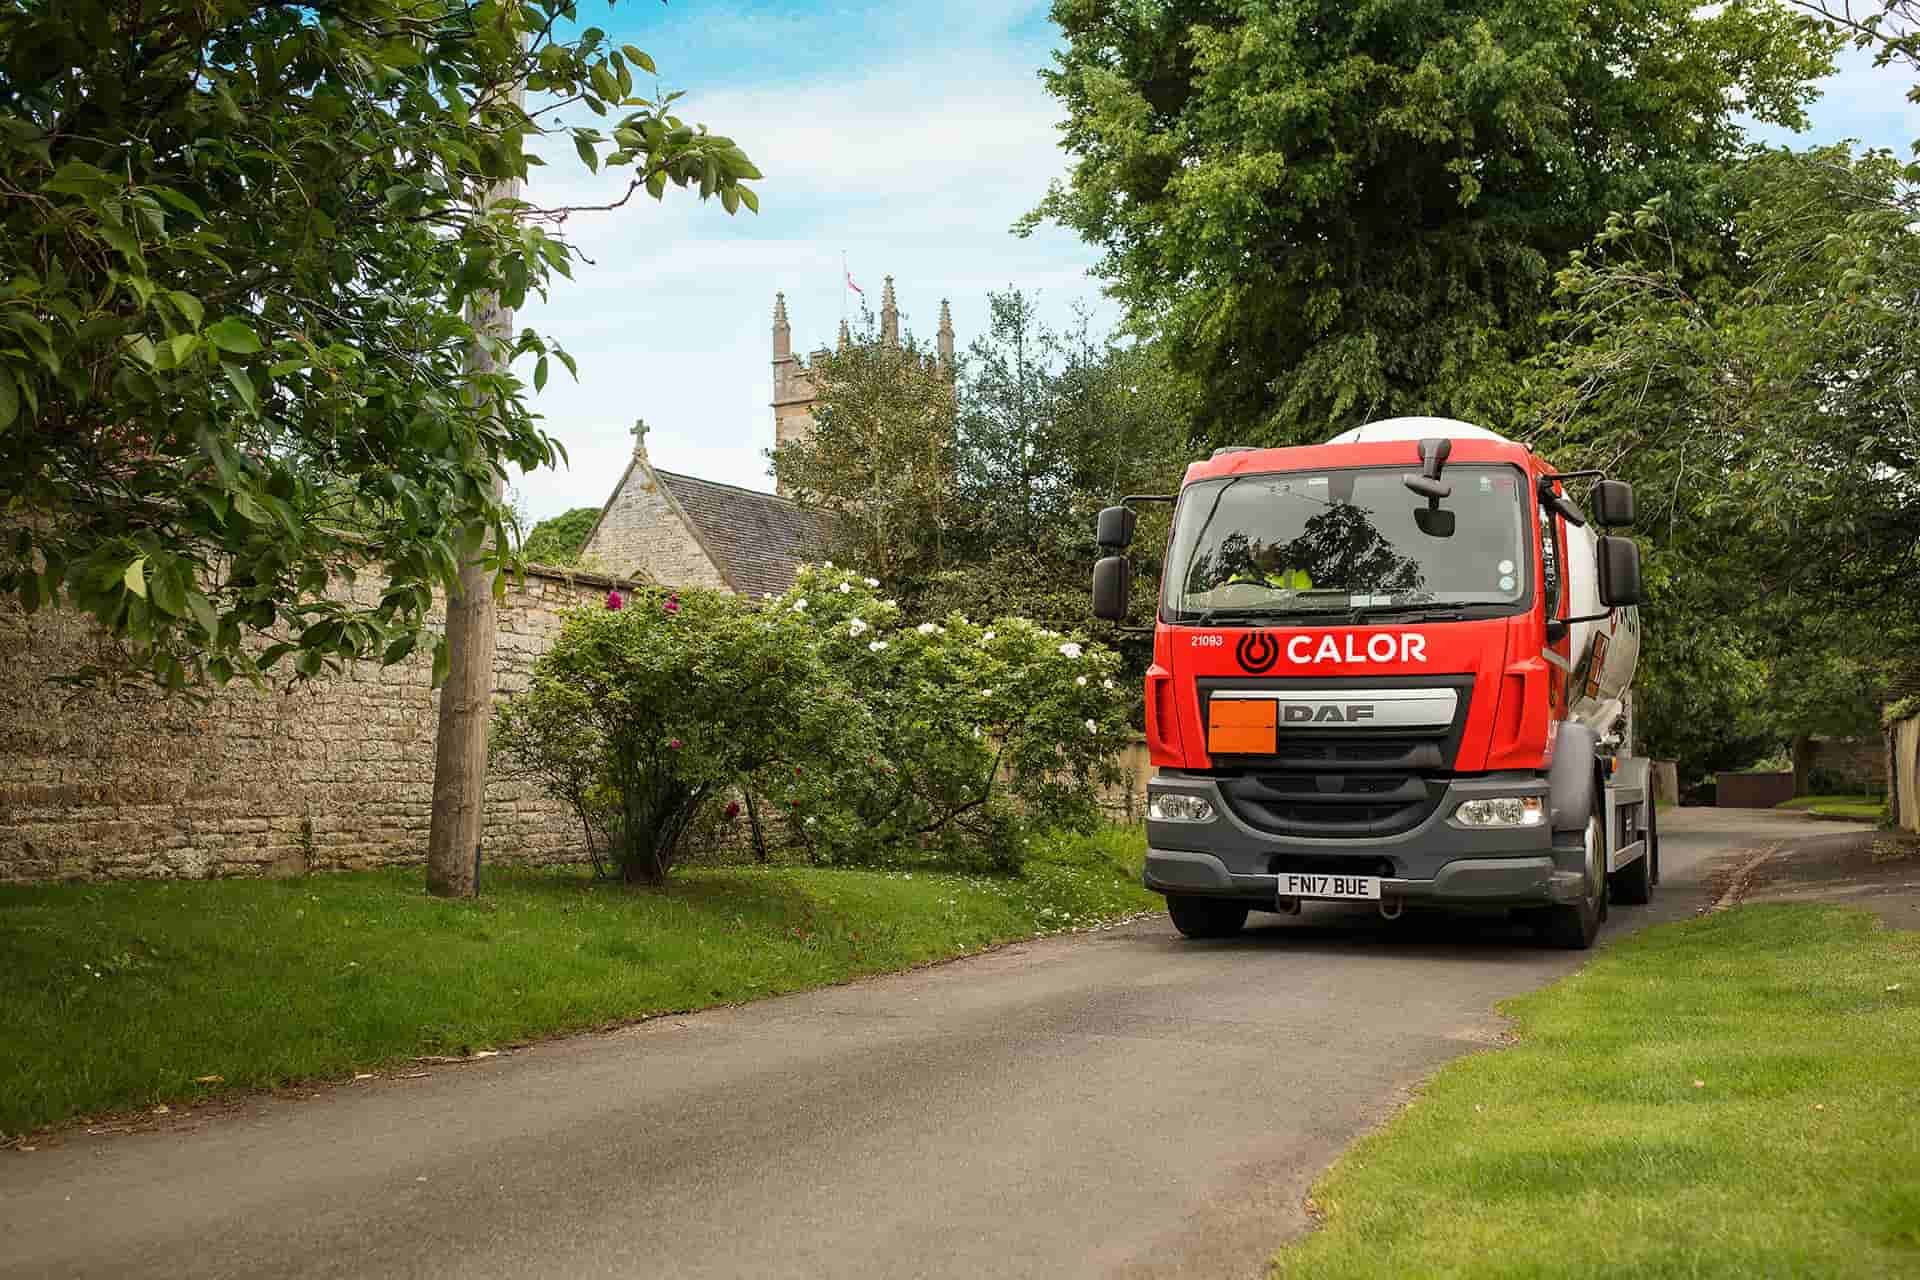 A front view of a Calor lorry driving through a village